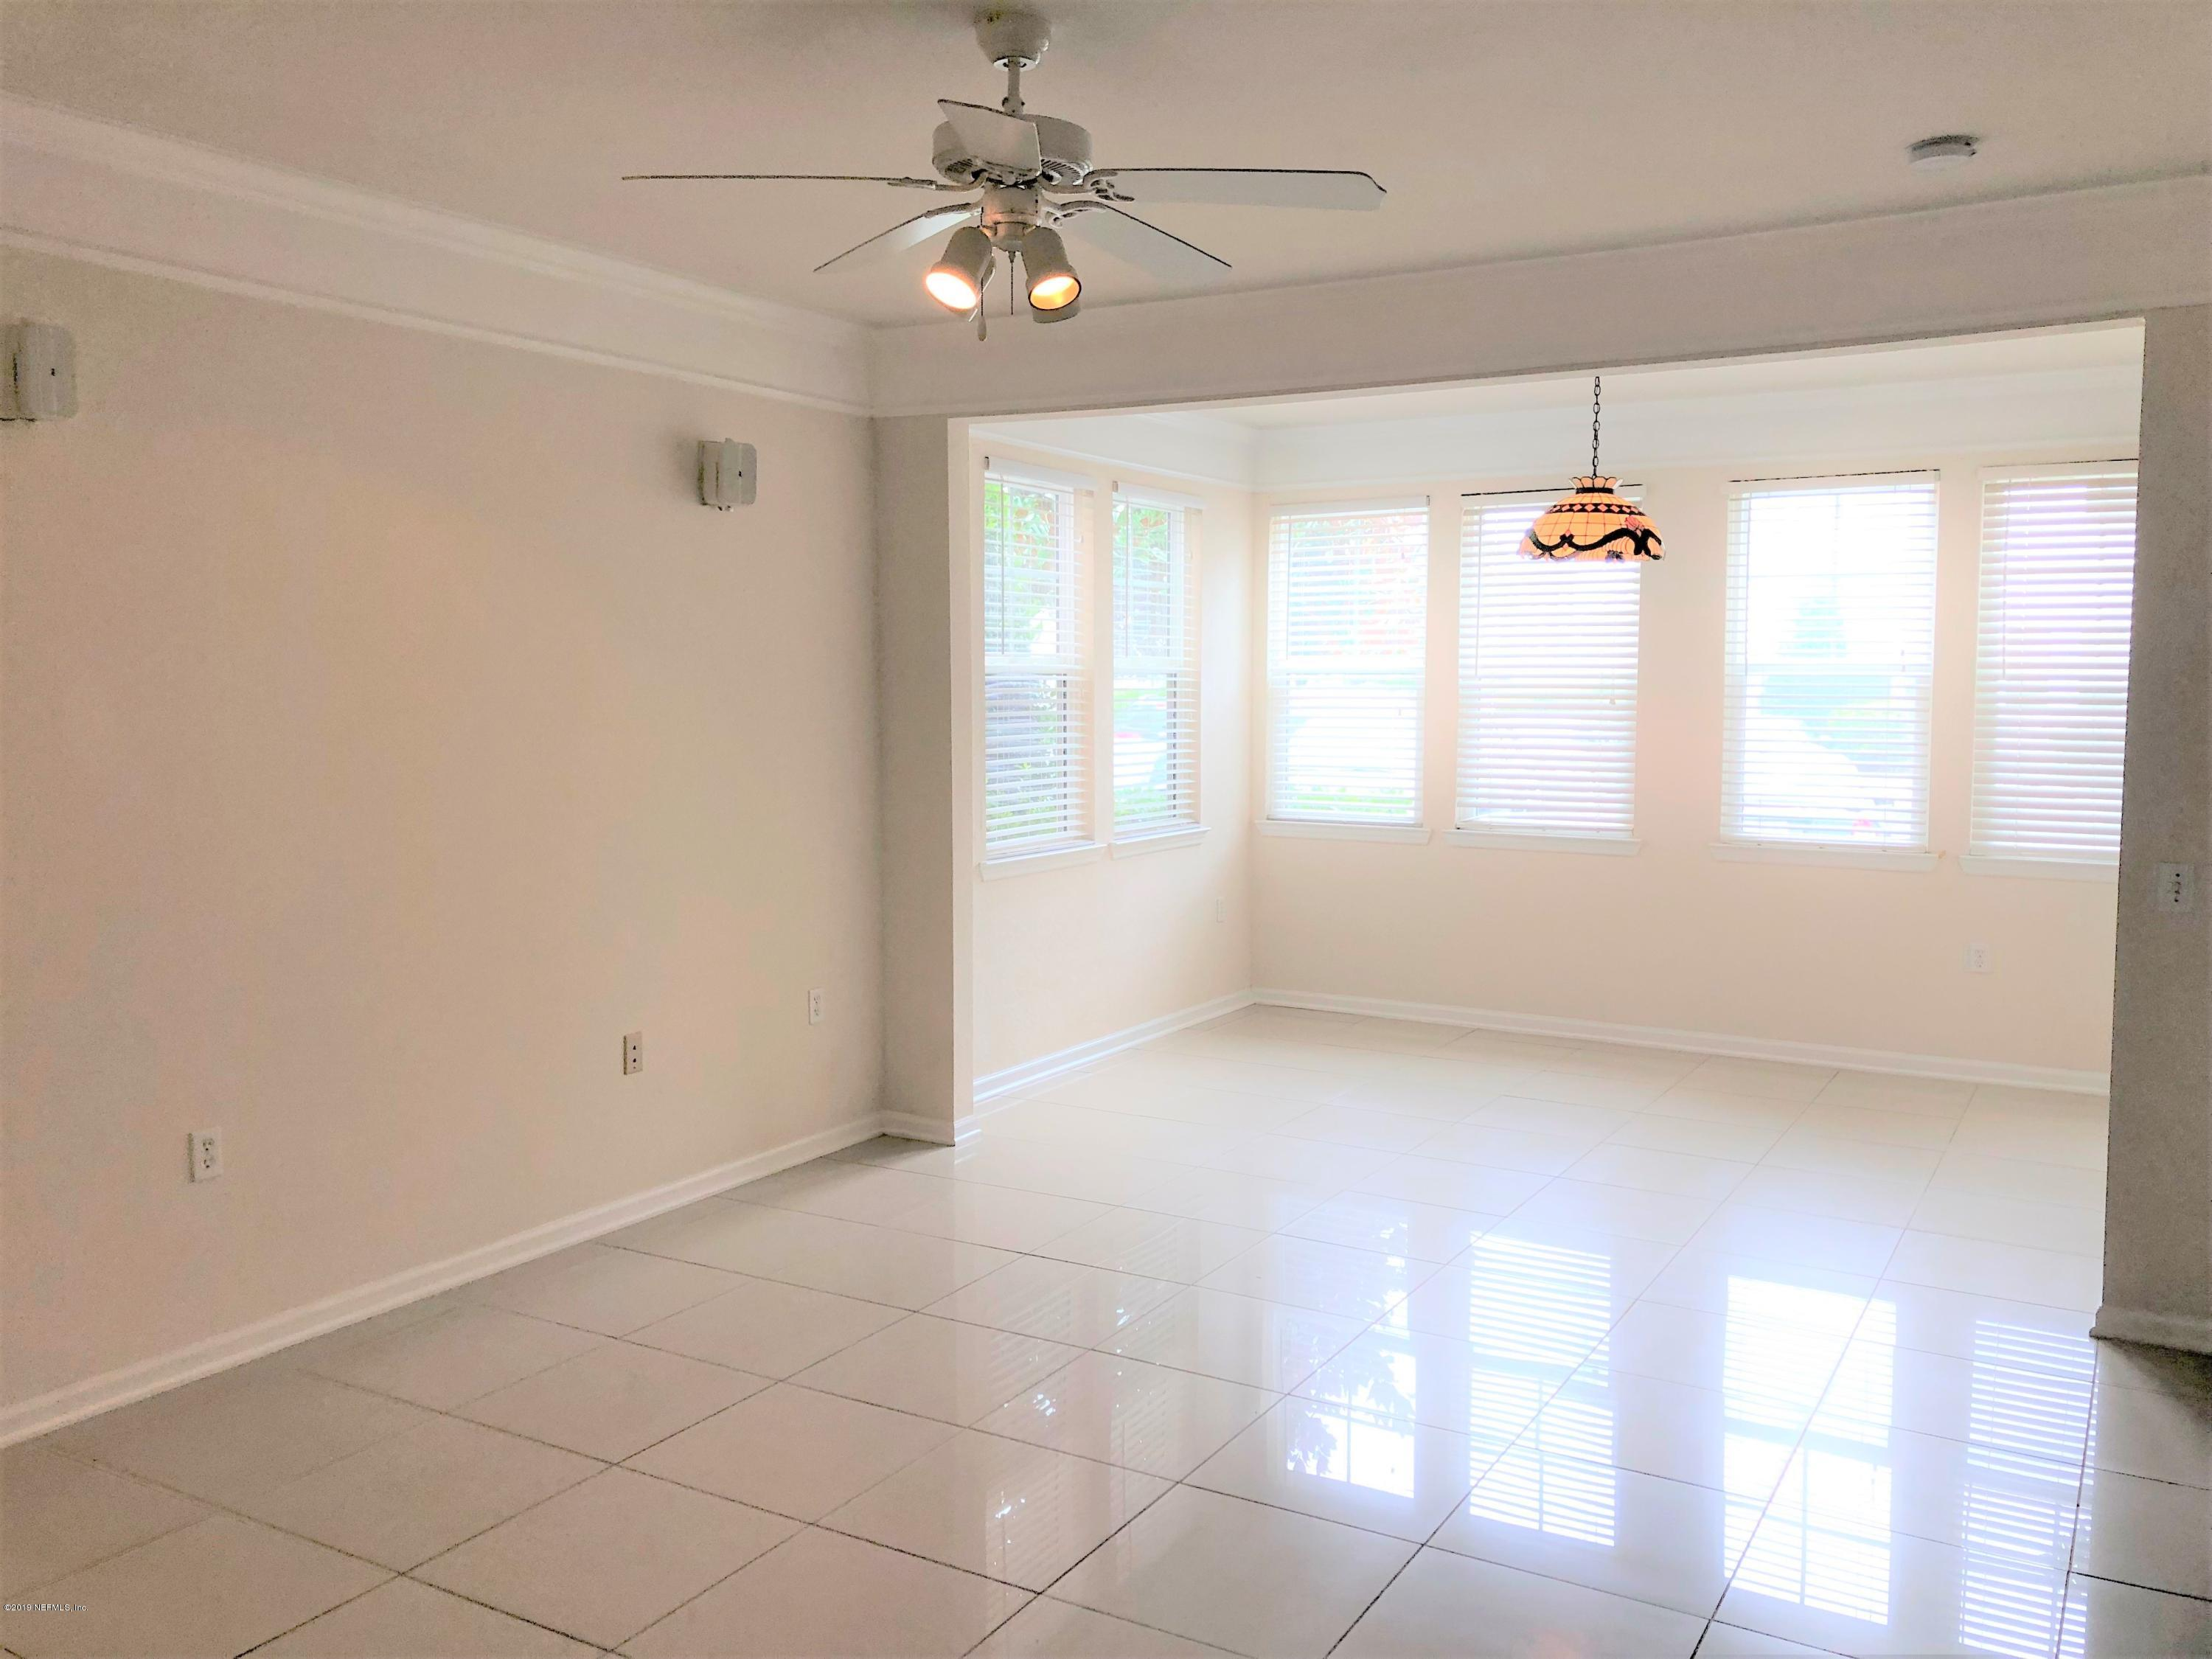 8550 TOUCHTON, JACKSONVILLE, FLORIDA 32216, 3 Bedrooms Bedrooms, ,2 BathroomsBathrooms,Condo,For sale,TOUCHTON,1004041